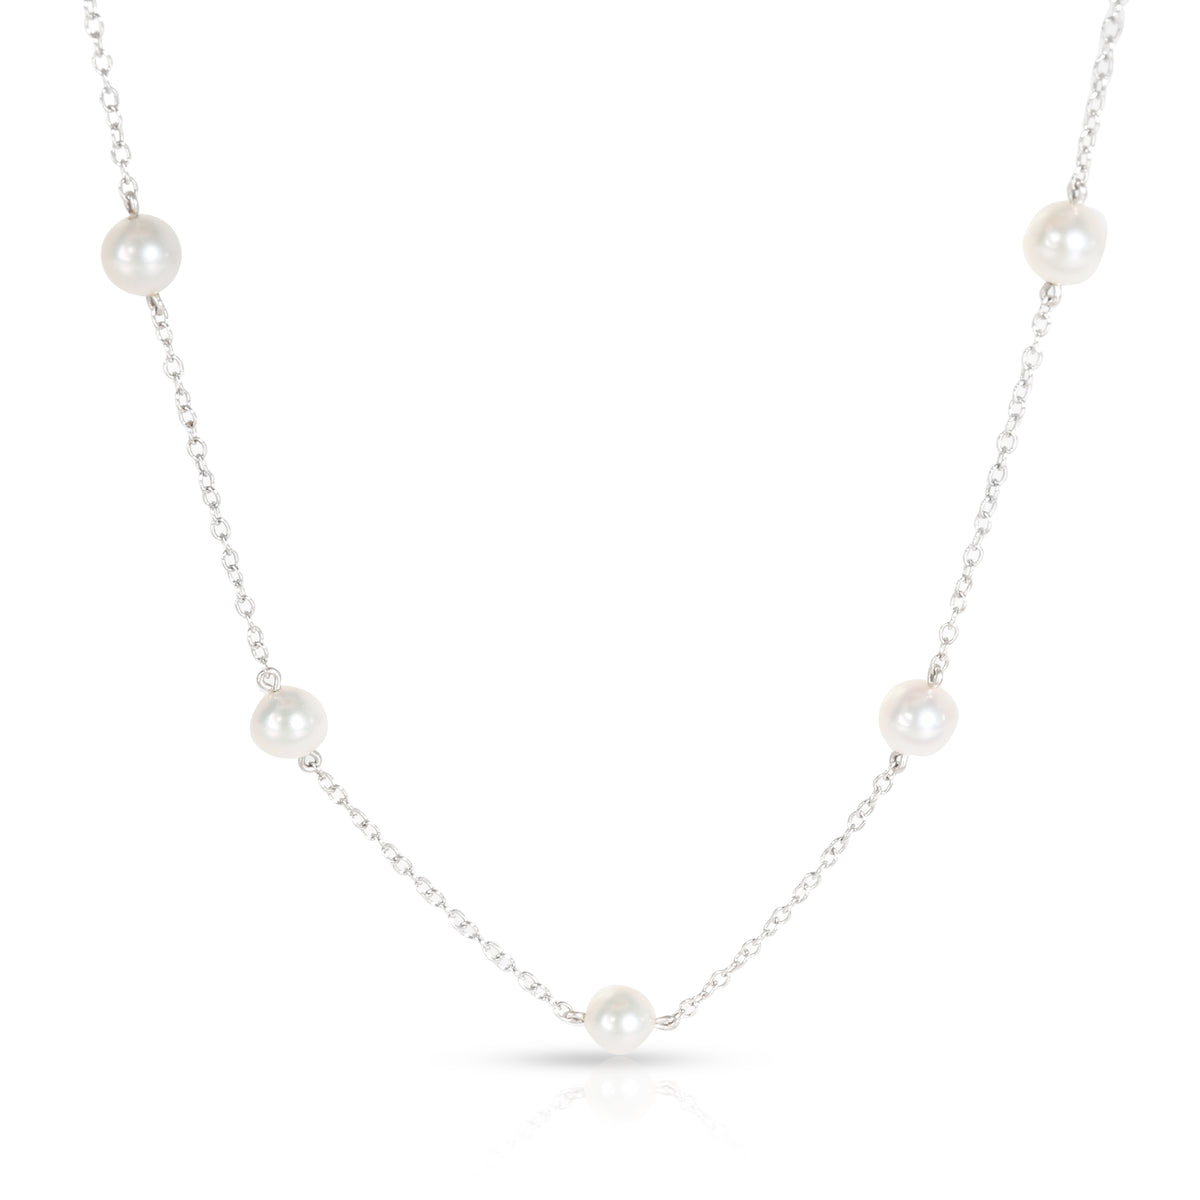 Mikimoto Station Collection Pearl Necklace in 18K White Gold